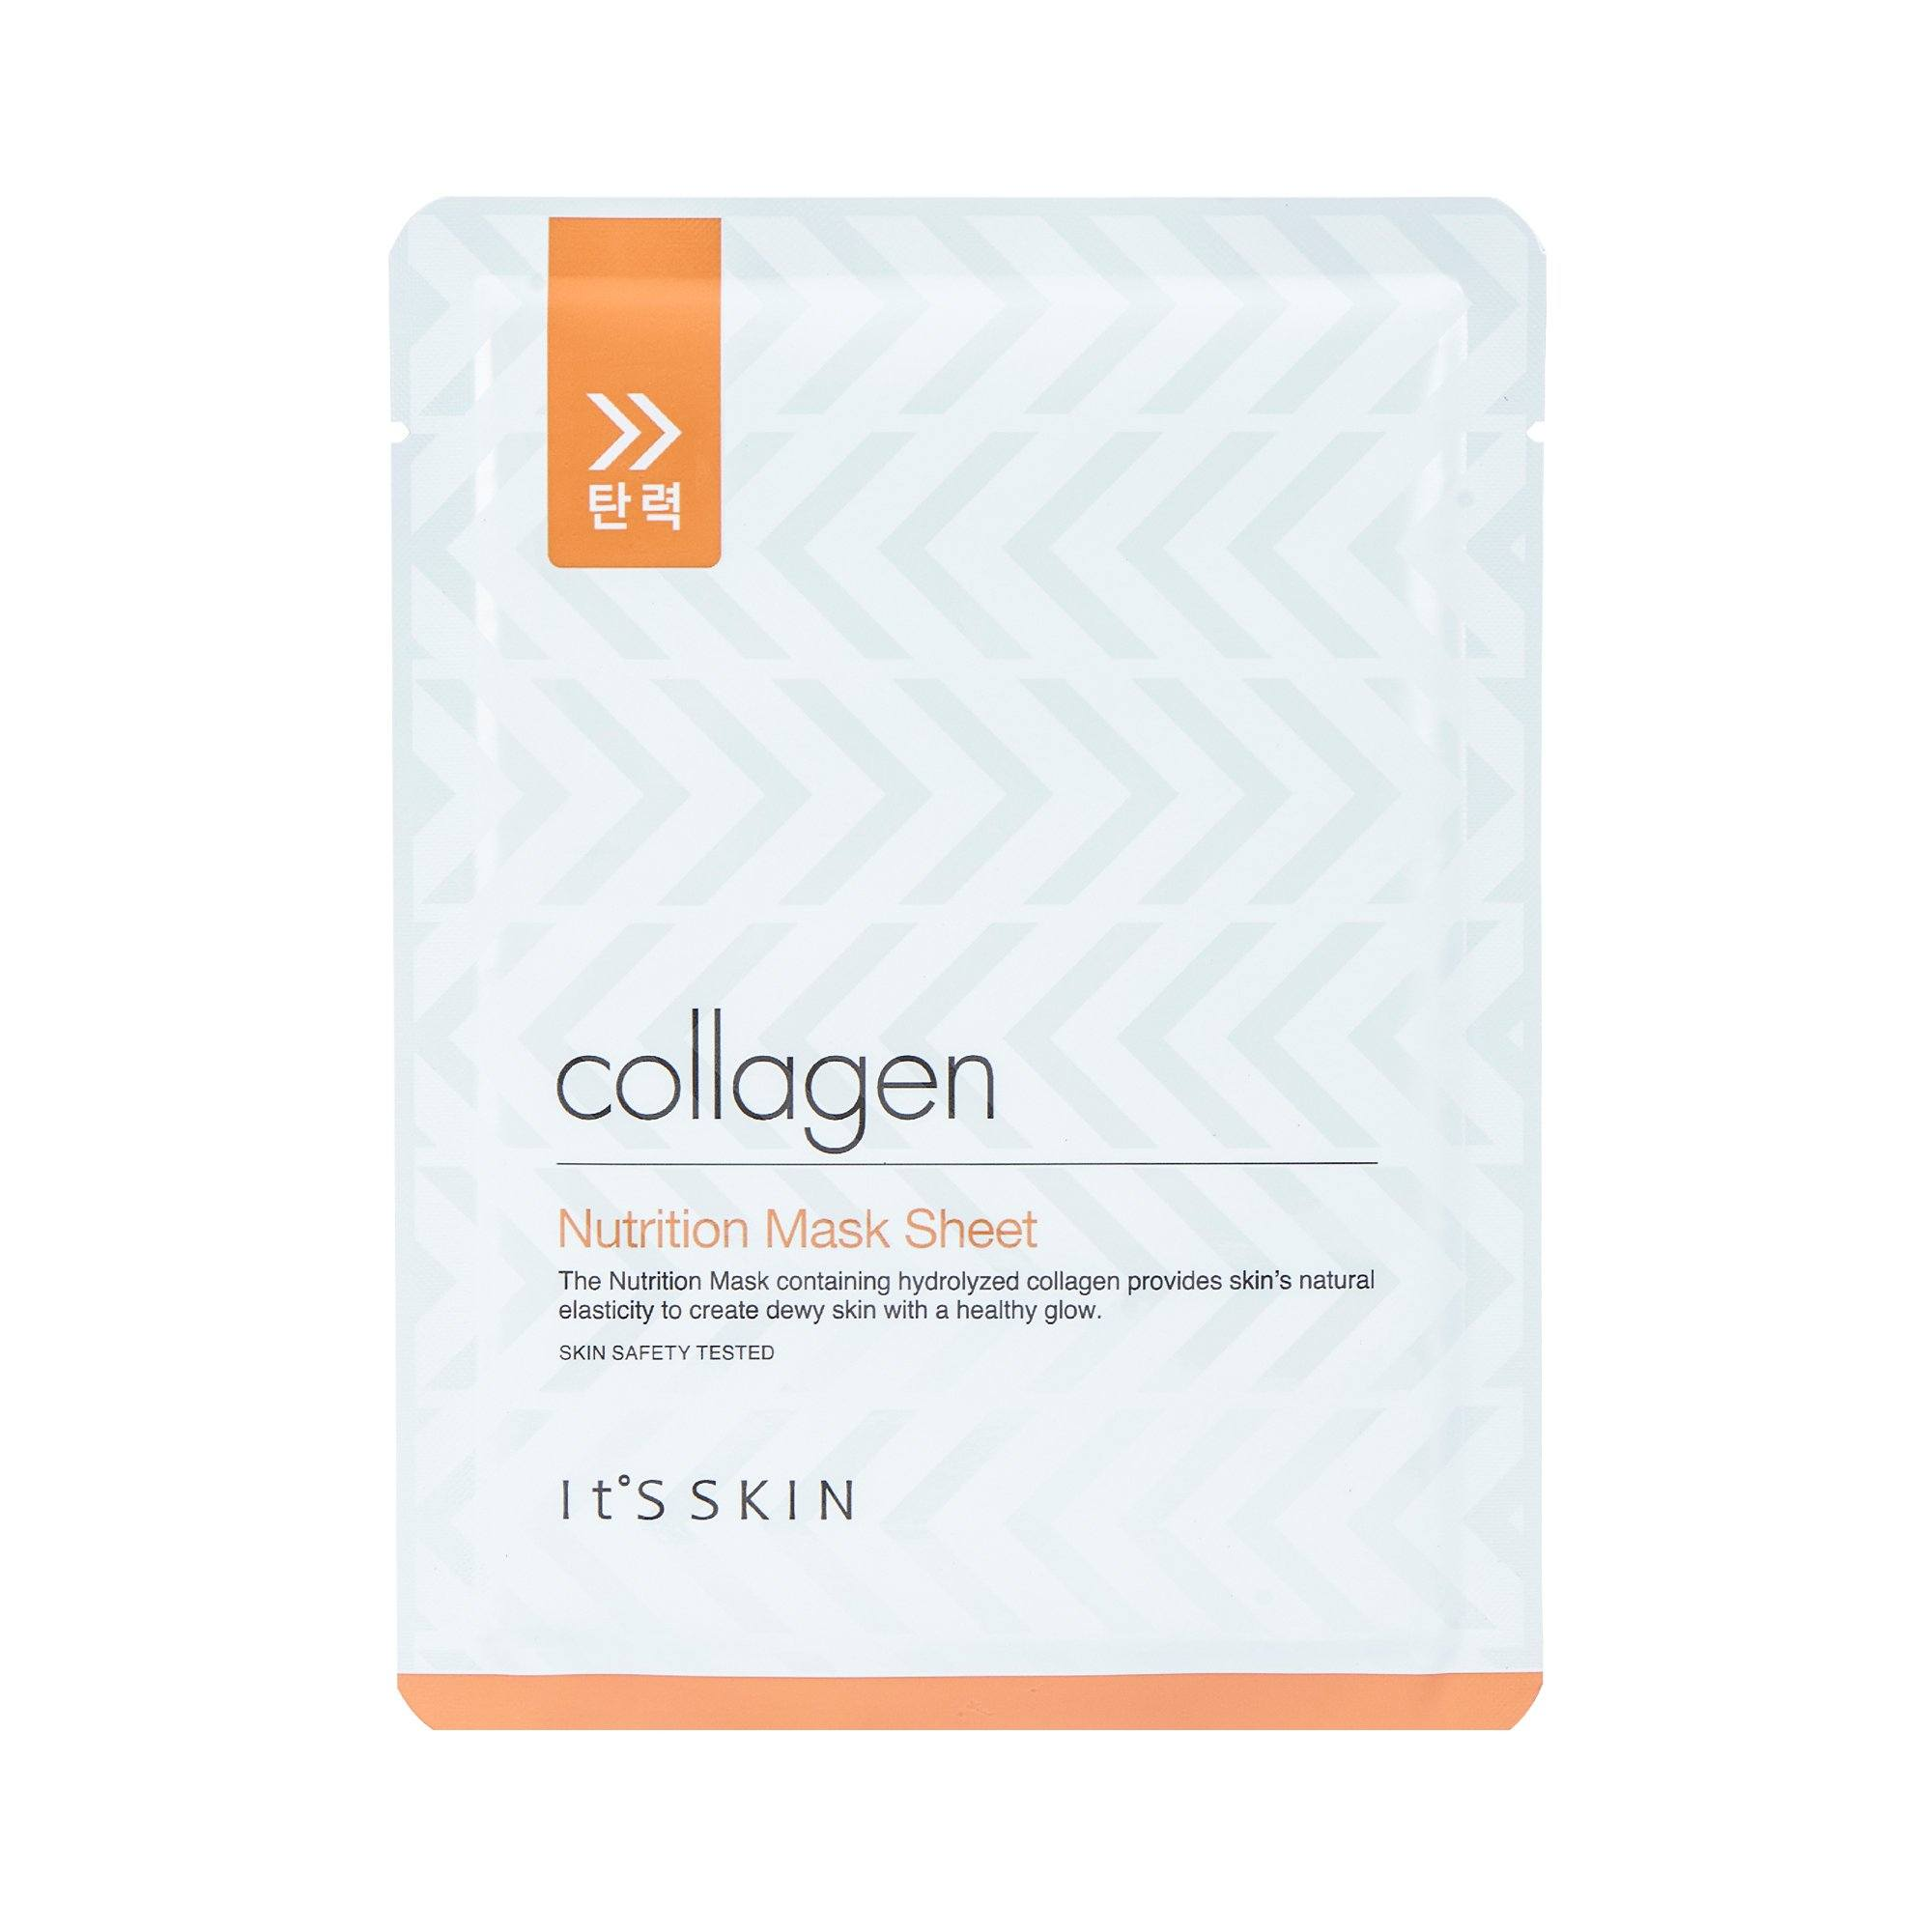 Health & Beauty > Personal Care > Cosmetics > Skin Care > Compressed Skin Care Mask Sheets - Collagen Nutrition Mask Sheet Maska Do Twarzy